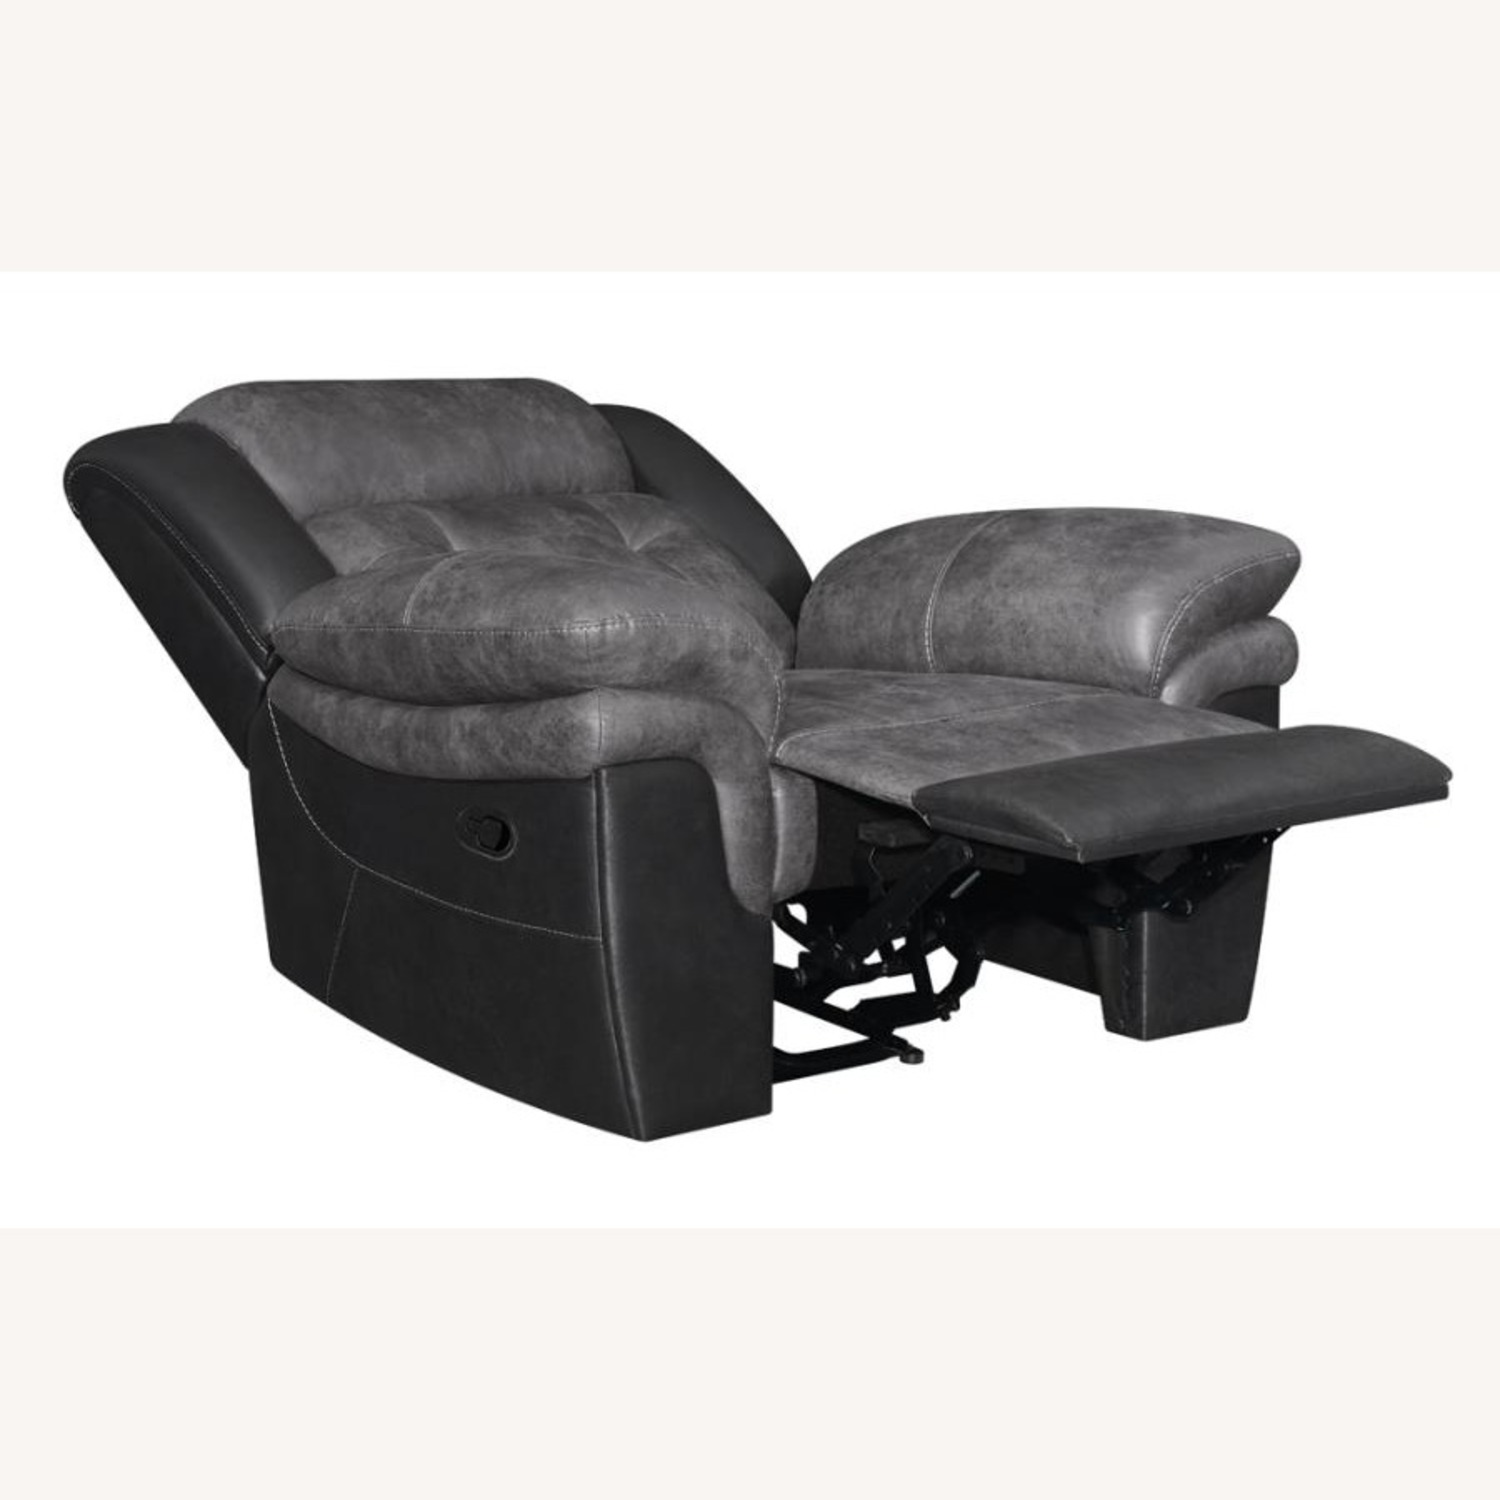 Recliner In Two-Tone Charcoal & Black Upholstery - image-1